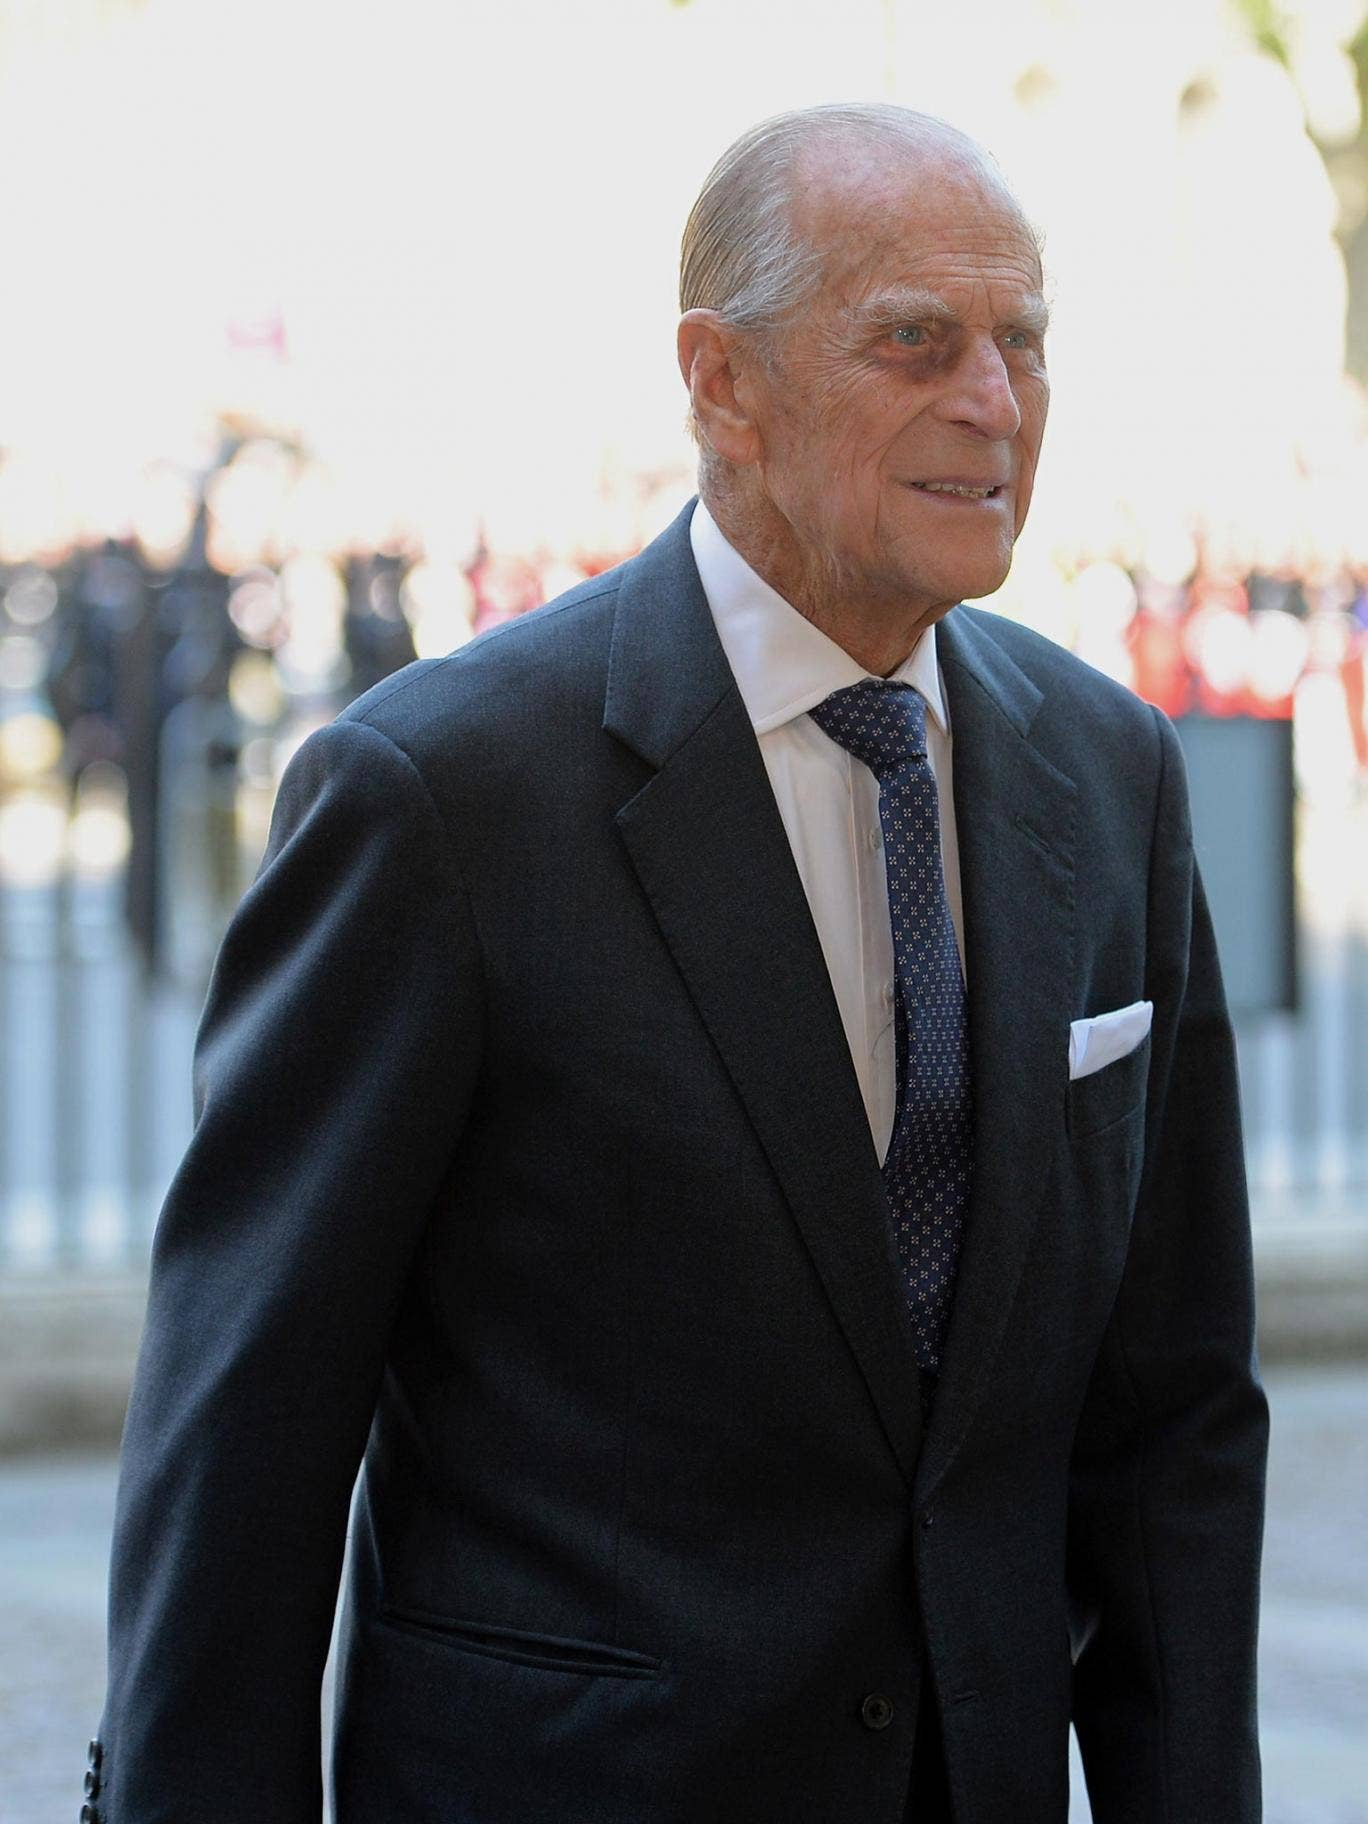 Britain's Prince Philip arrives at Westminster Abbey in London for a service to celebrate the 60th anniversary of the Coronation Service. Britain's Queen Elizabeth II, now 87, took the throne on February 6, 1952 upon the death of her father king George VI